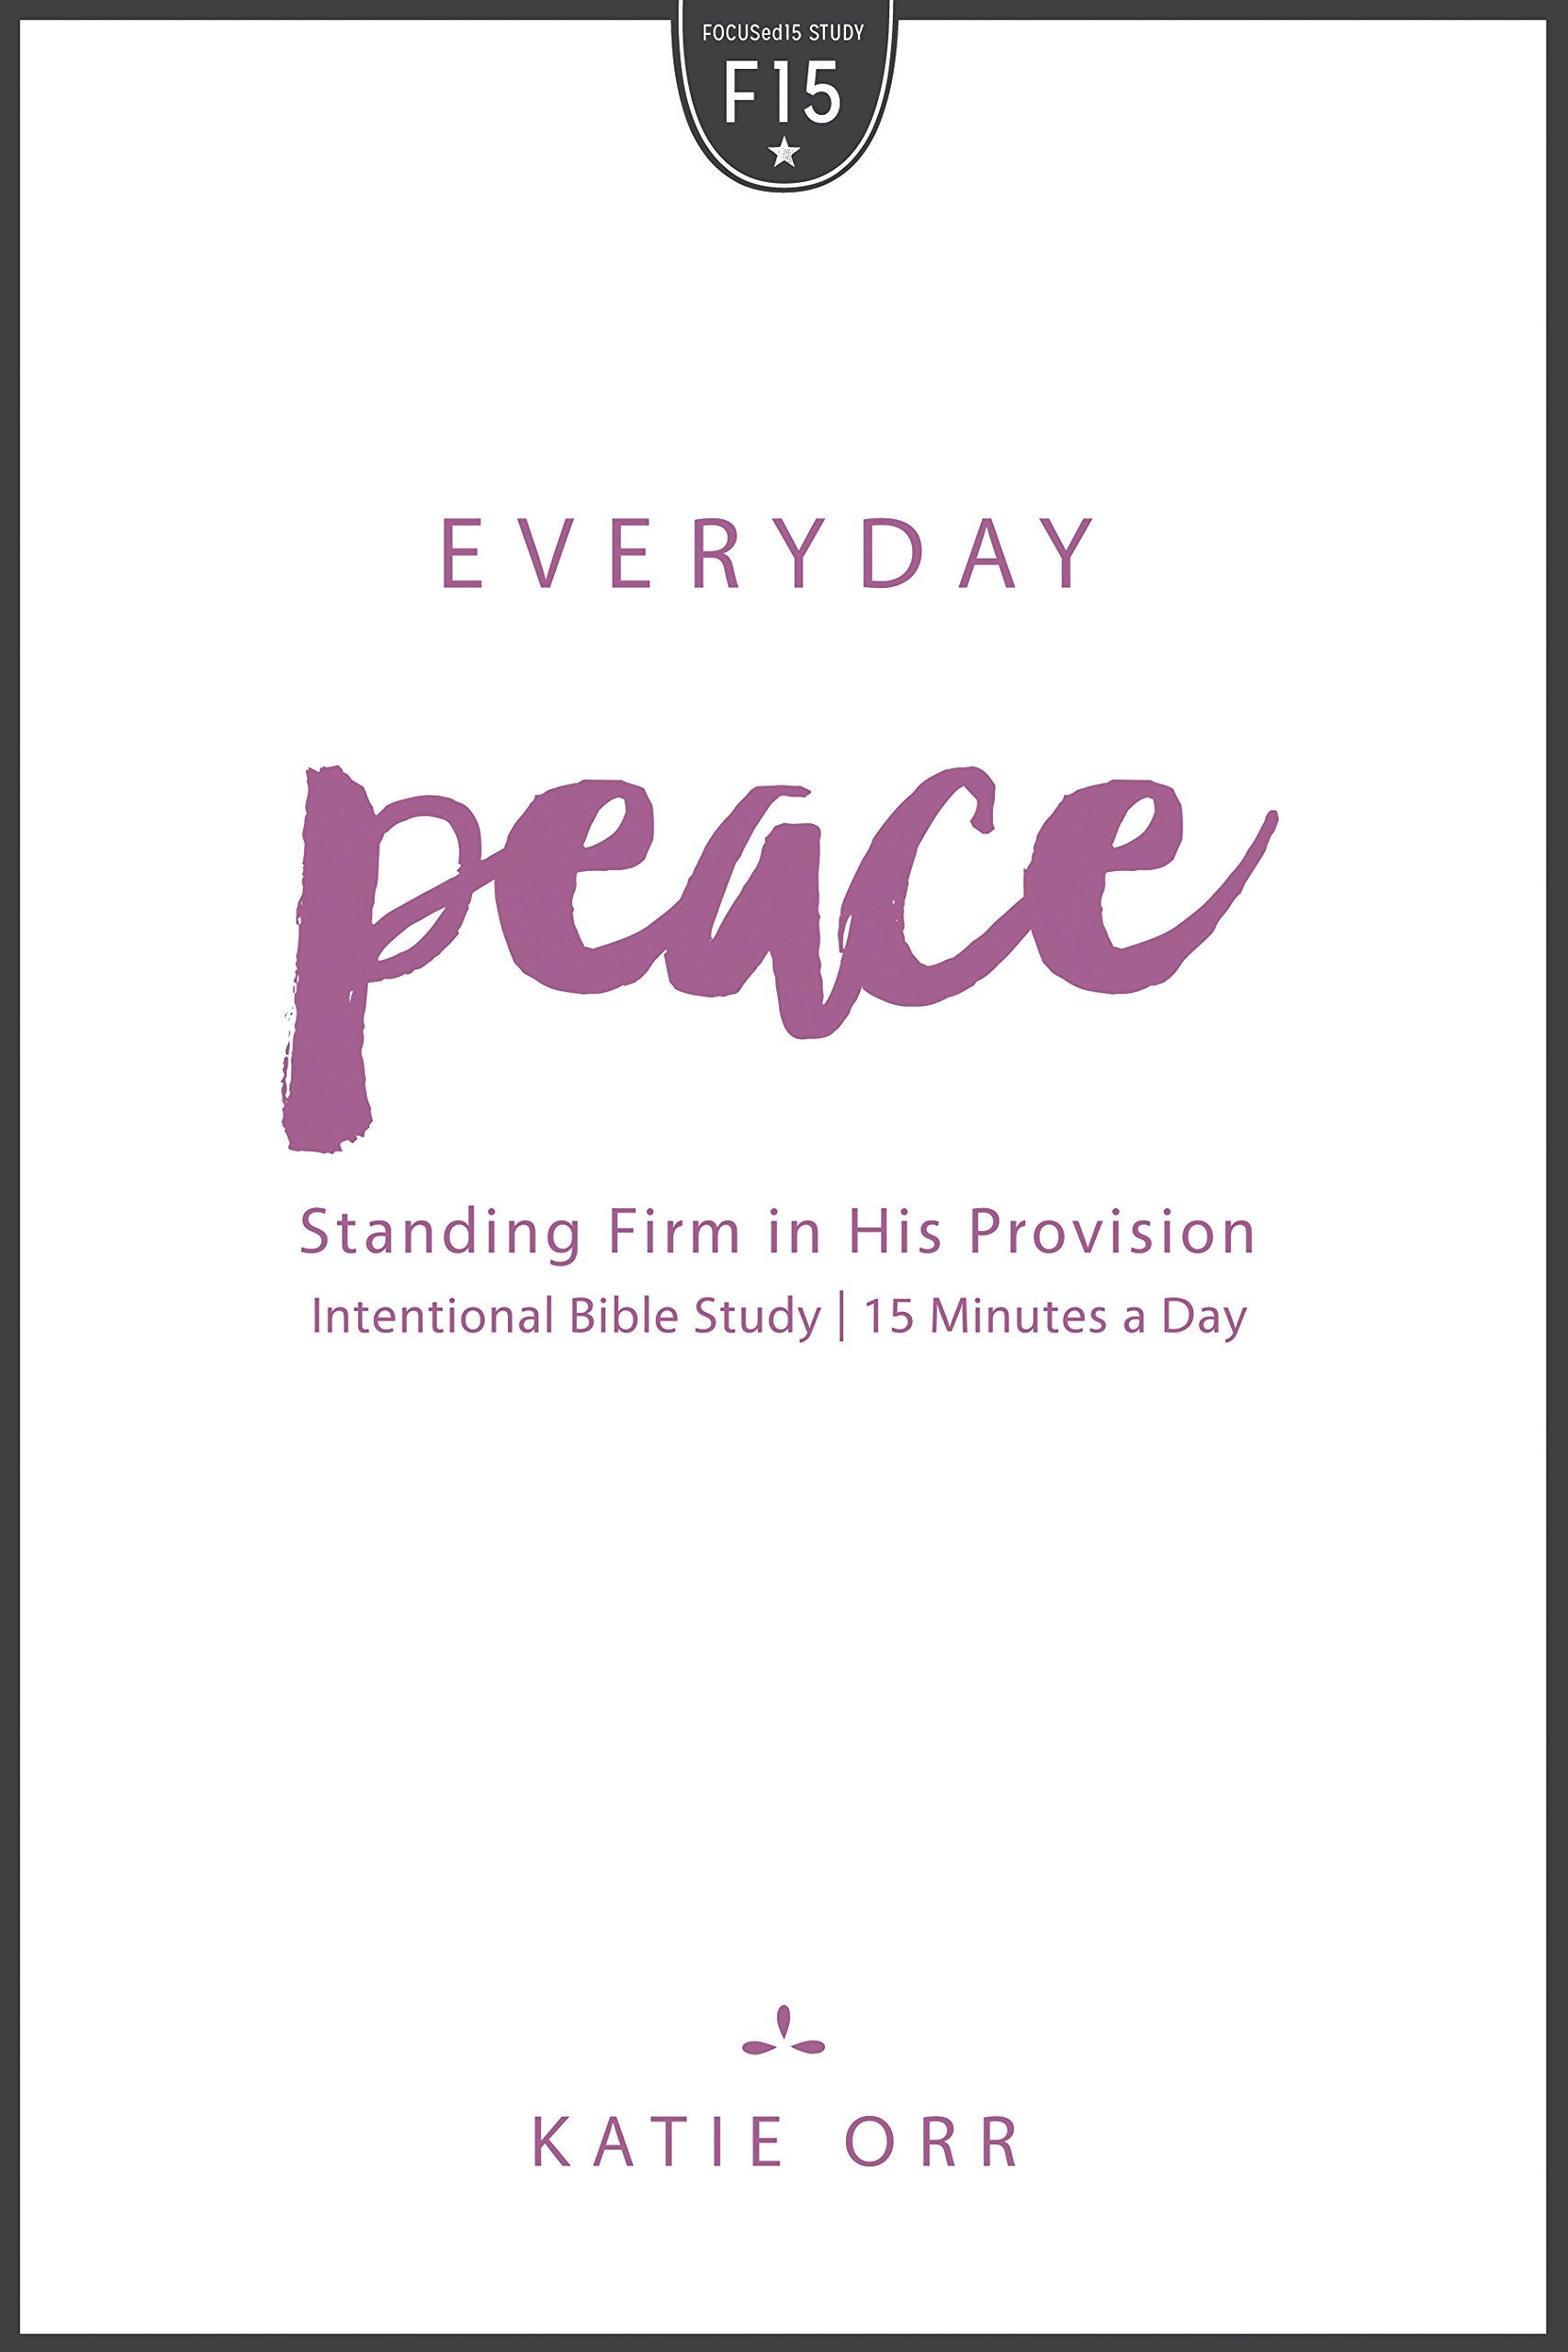 Everyday Peace: Standing Firm in His Provision PDF